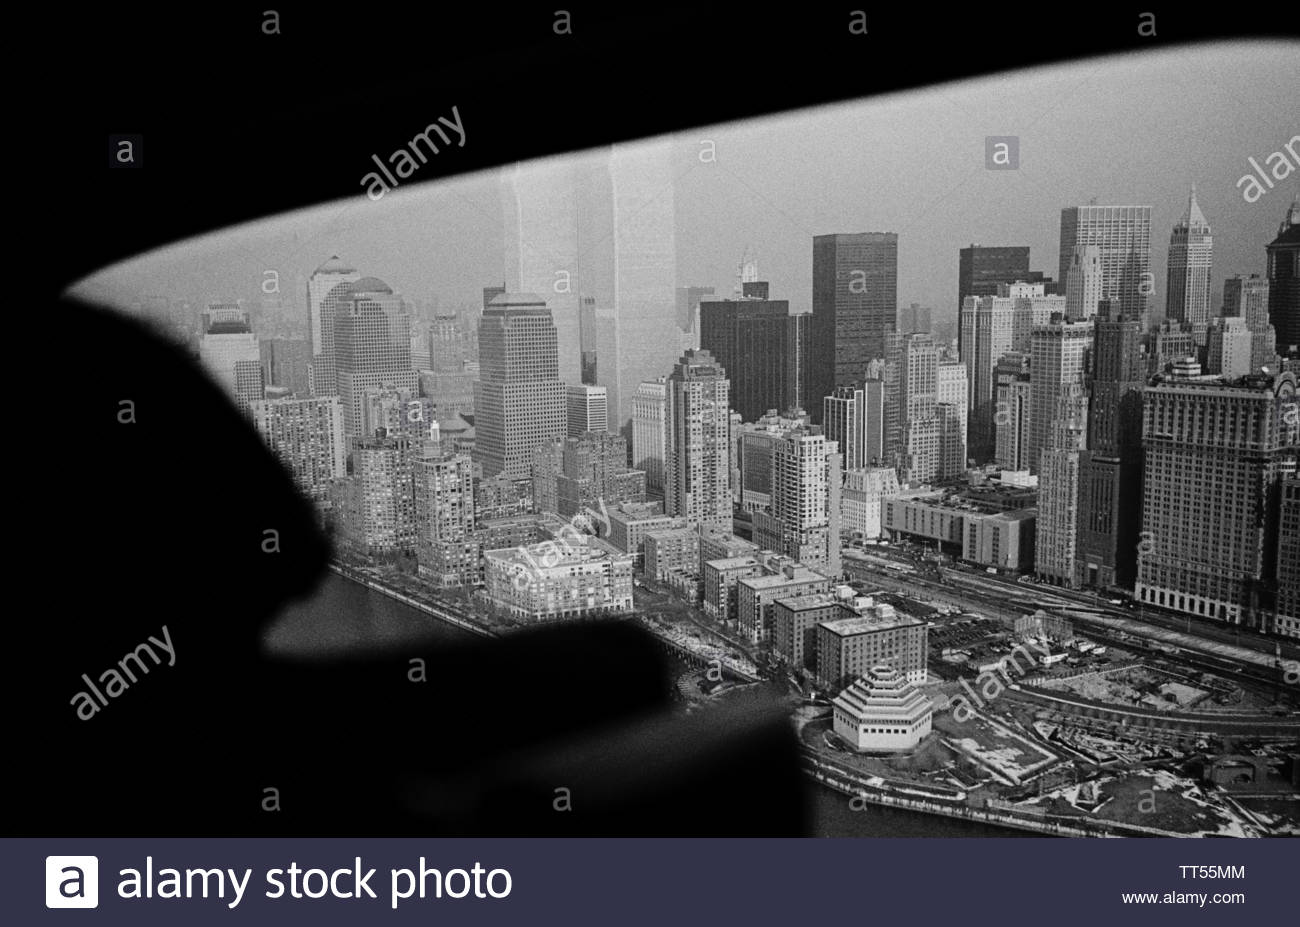 view-from-a-helicopter-looking-down-on-to-lower-manhattan-world-trade-center-towers-present-new-york-city-usa-TT55MM.jpg